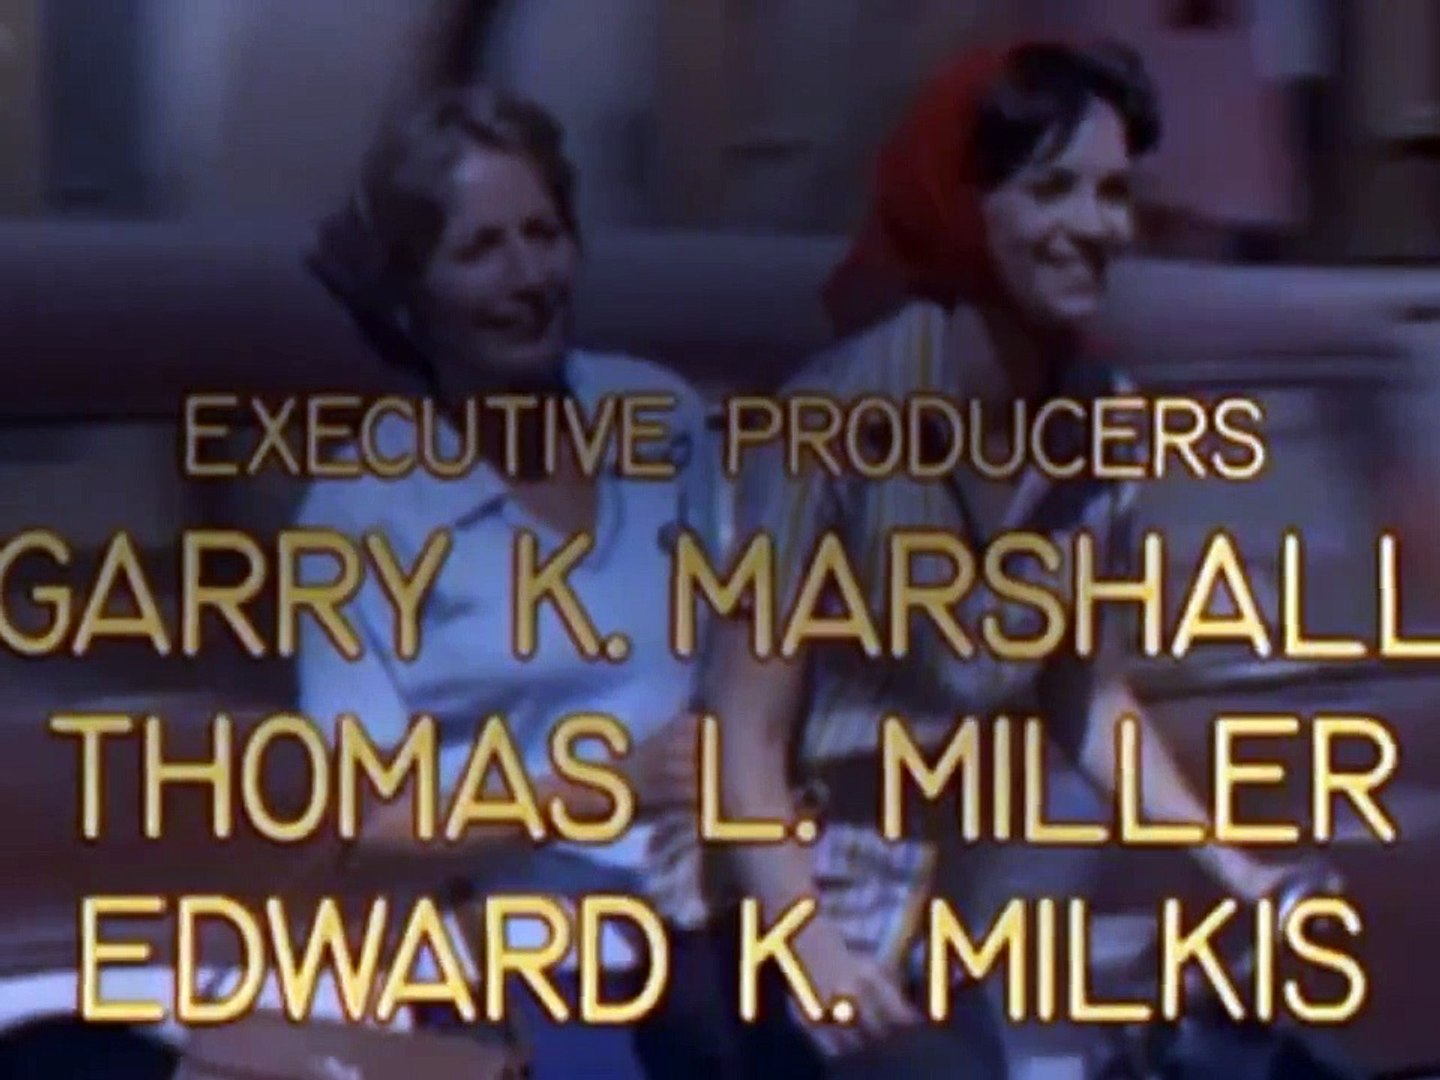 Laverne and Shirley - Se4 - Ep24 - Shirley and the Older Man HD Watch